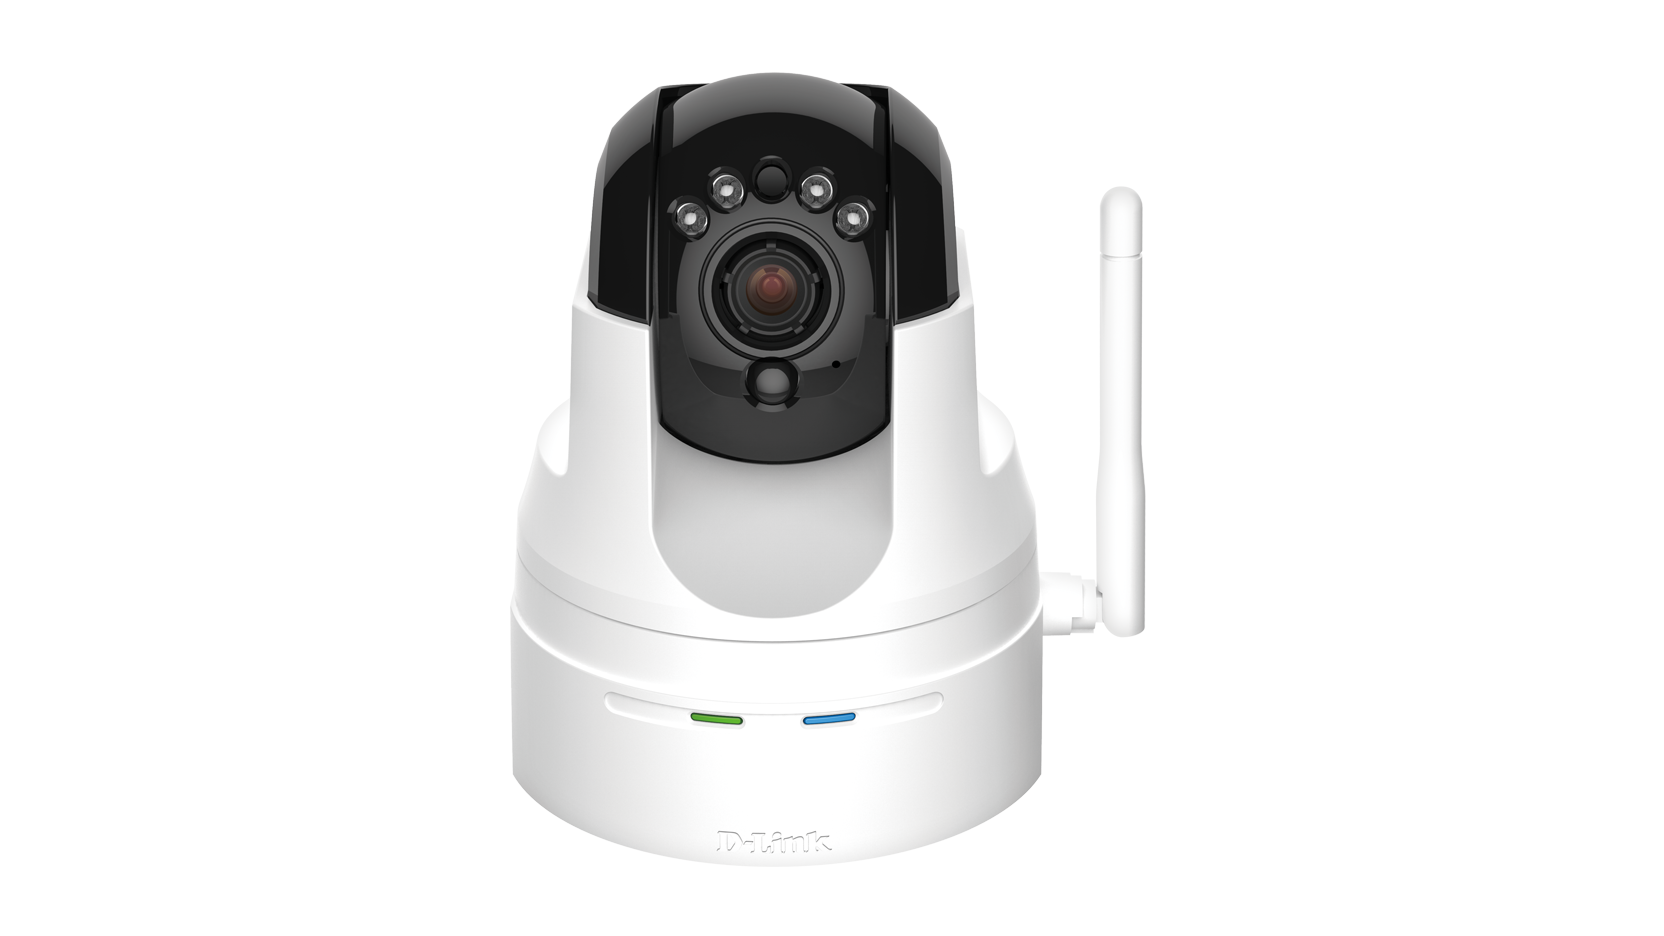 Hd Pan Amp Tilt Wi Fi Camera D Link